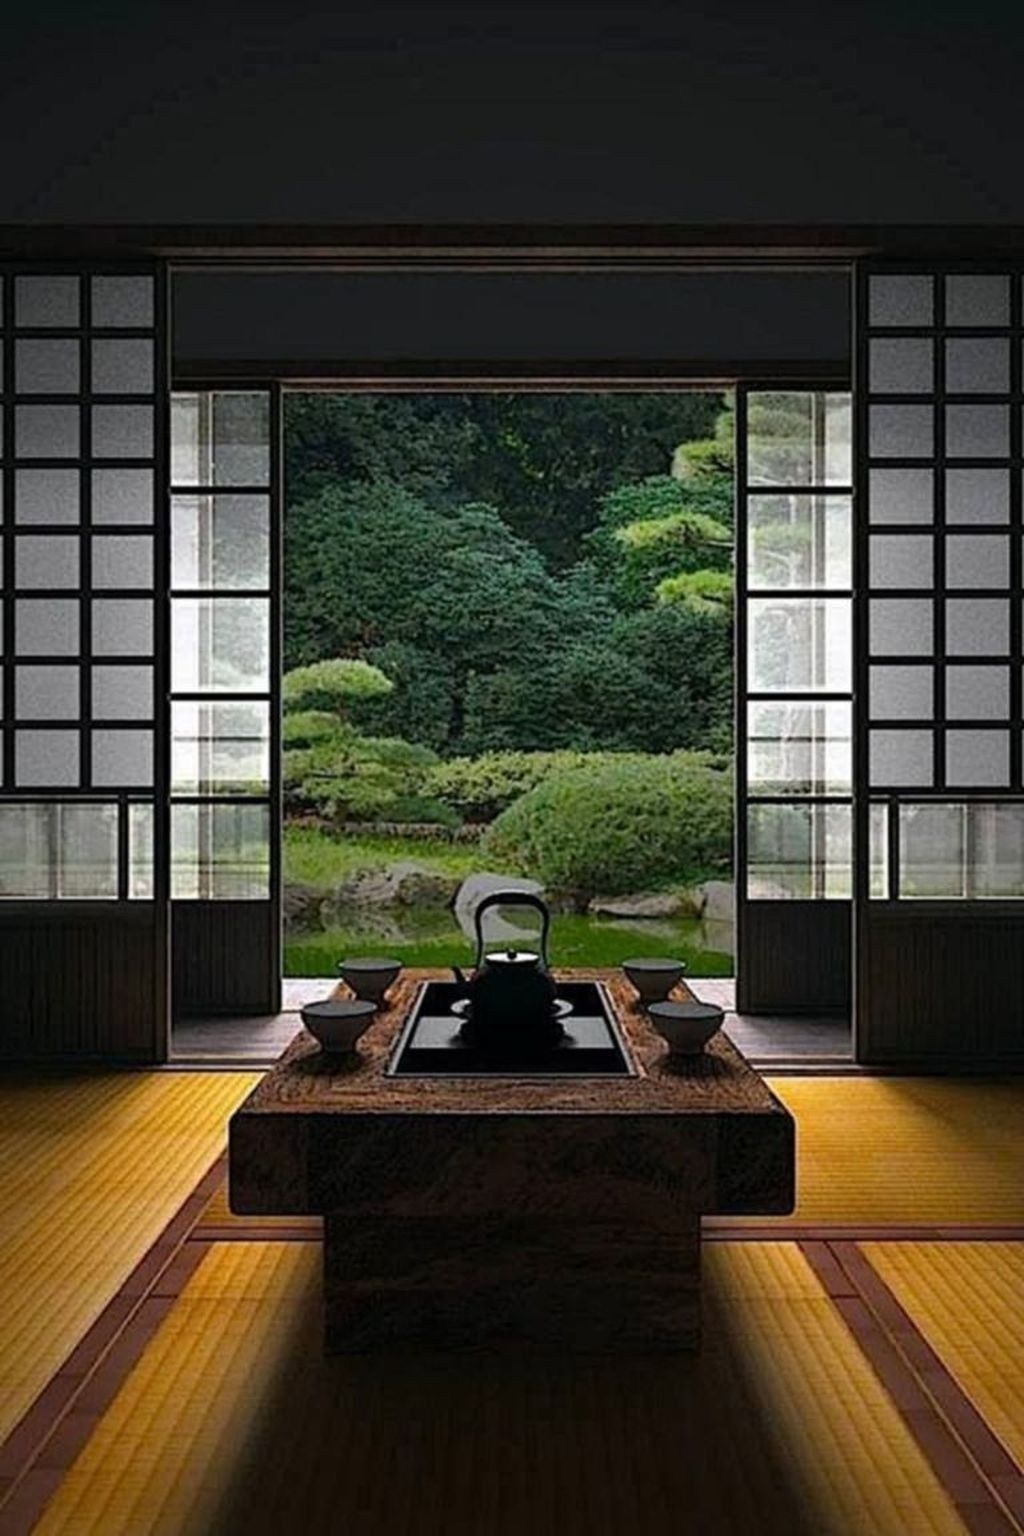 Awesome Japanese Living Room Decor Ideas 46 Japanese House Japanese Interior Design Japanese Decor